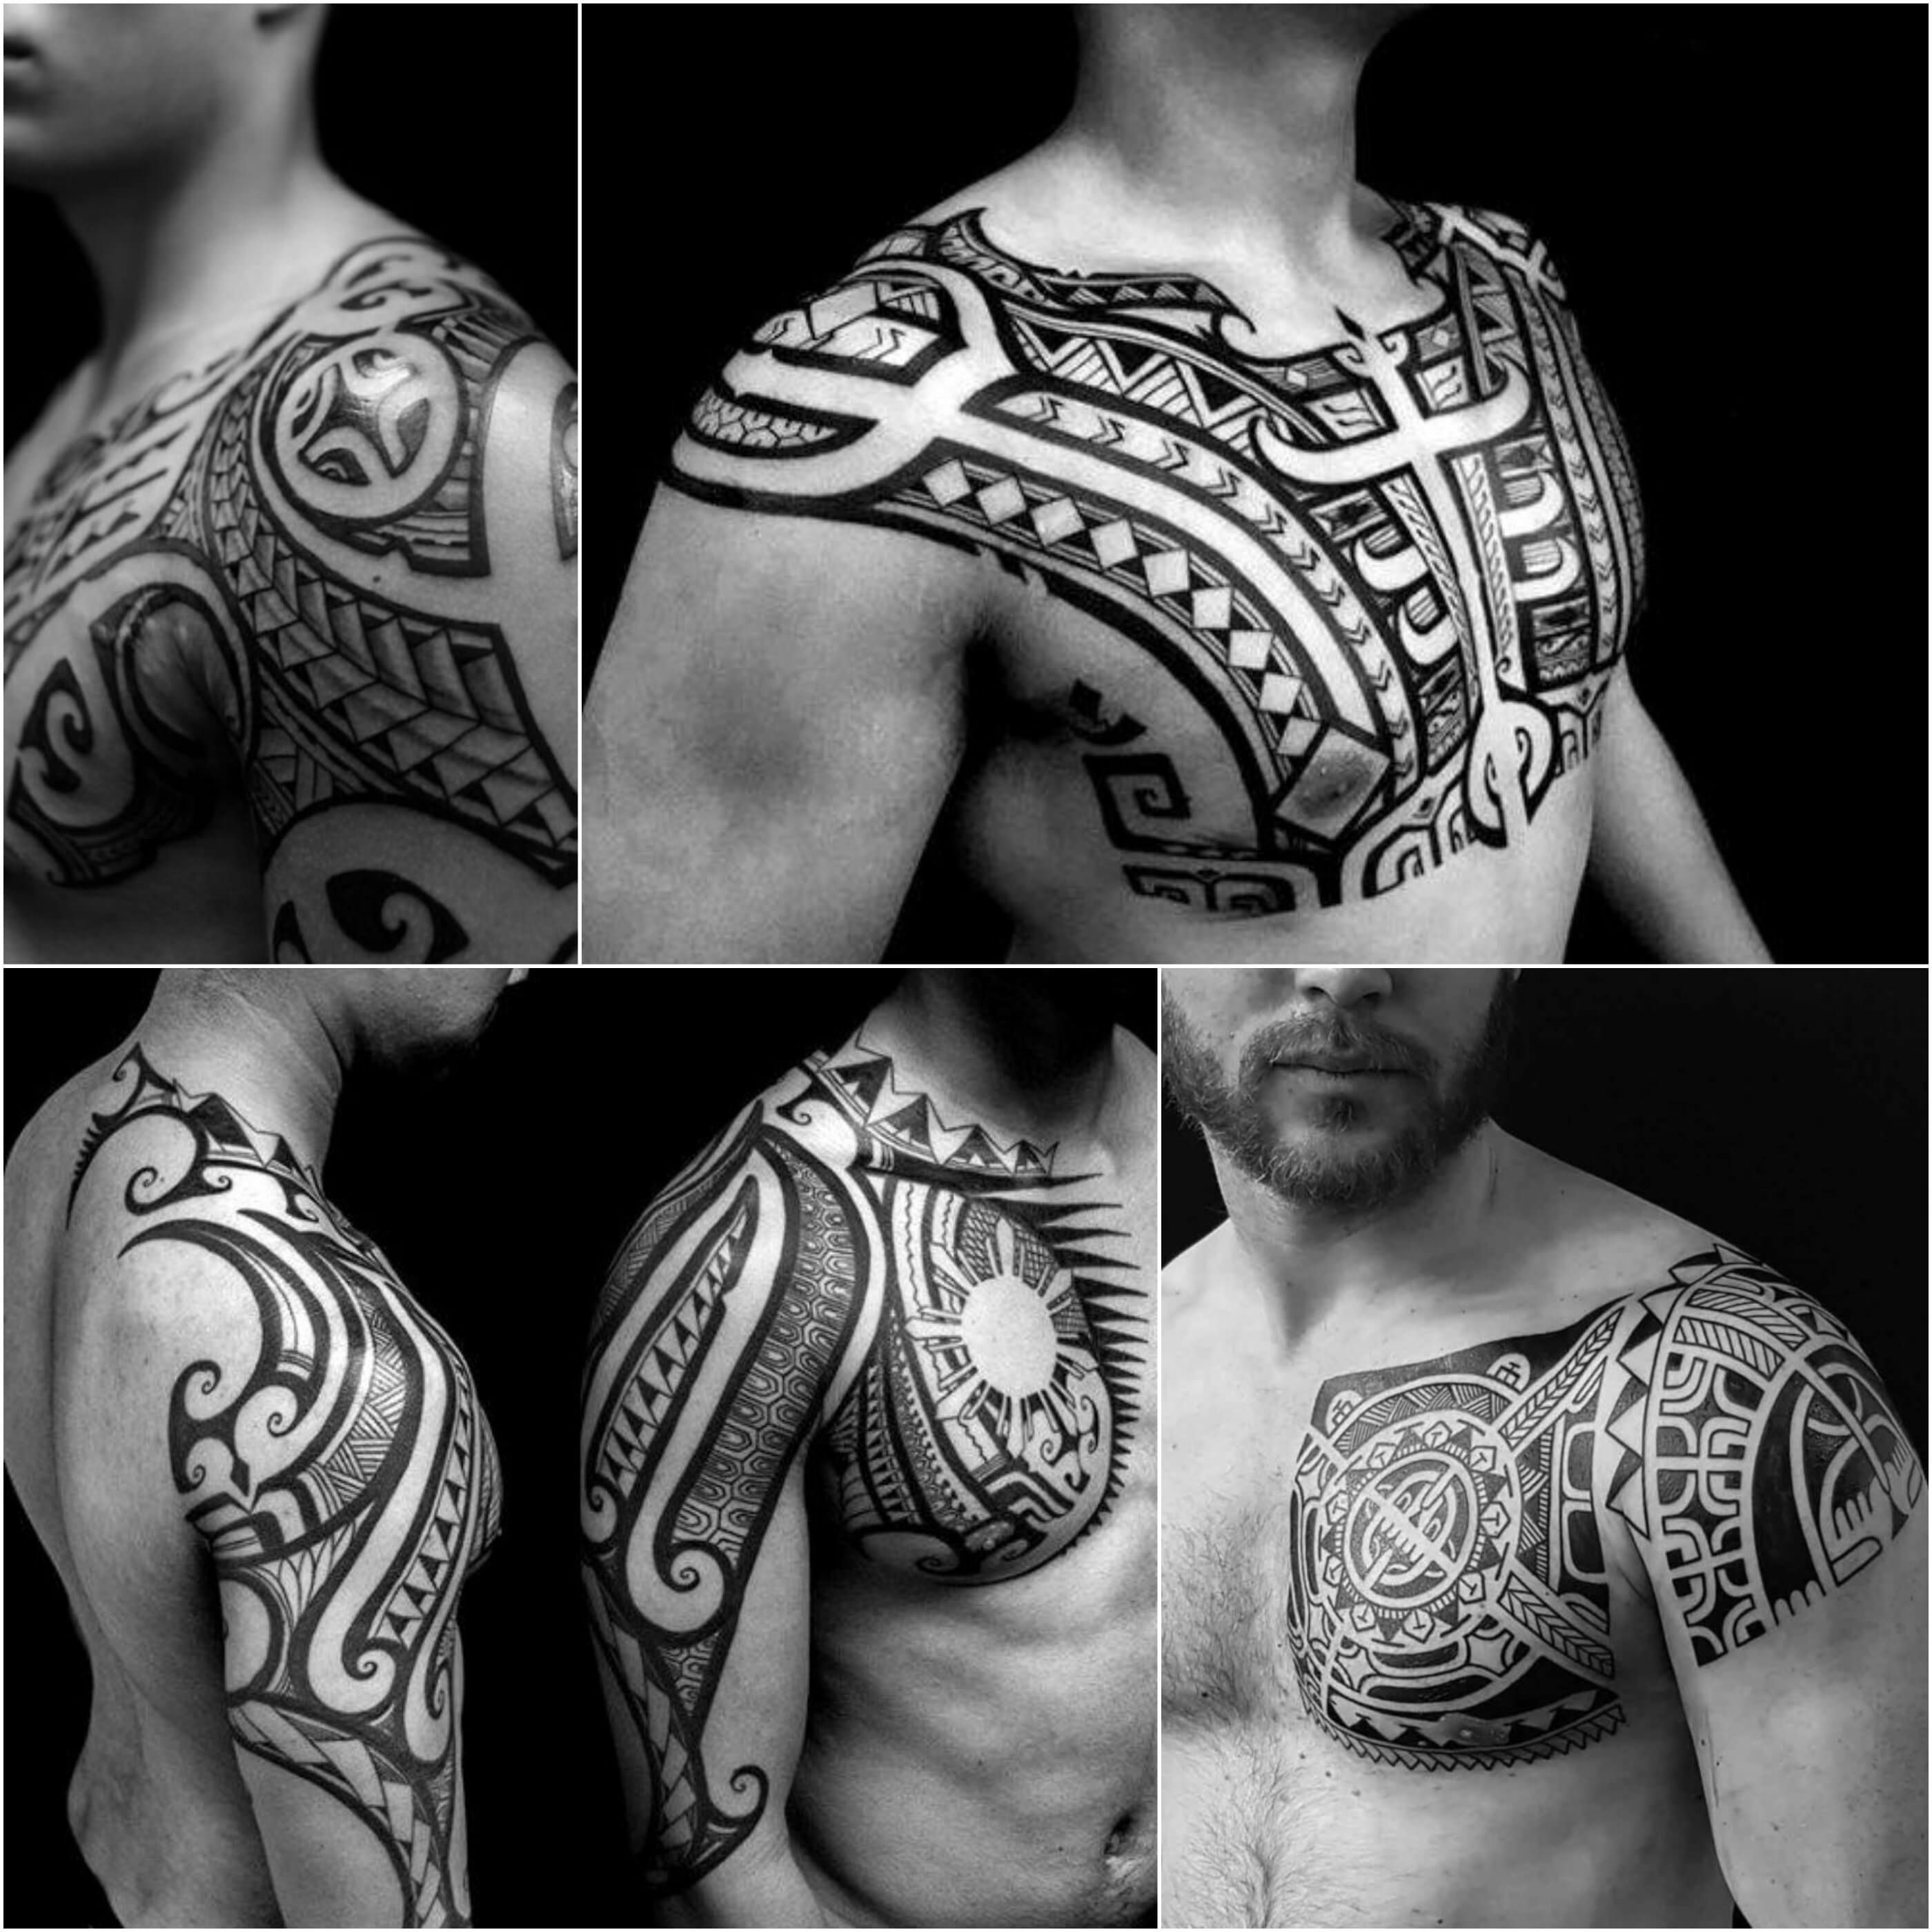 100 Best Chest Tattoos For Men Chest Tattoo Gallery For Men Tattoo Gallery For Men Chest Tattoo Men Cool Chest Tattoos